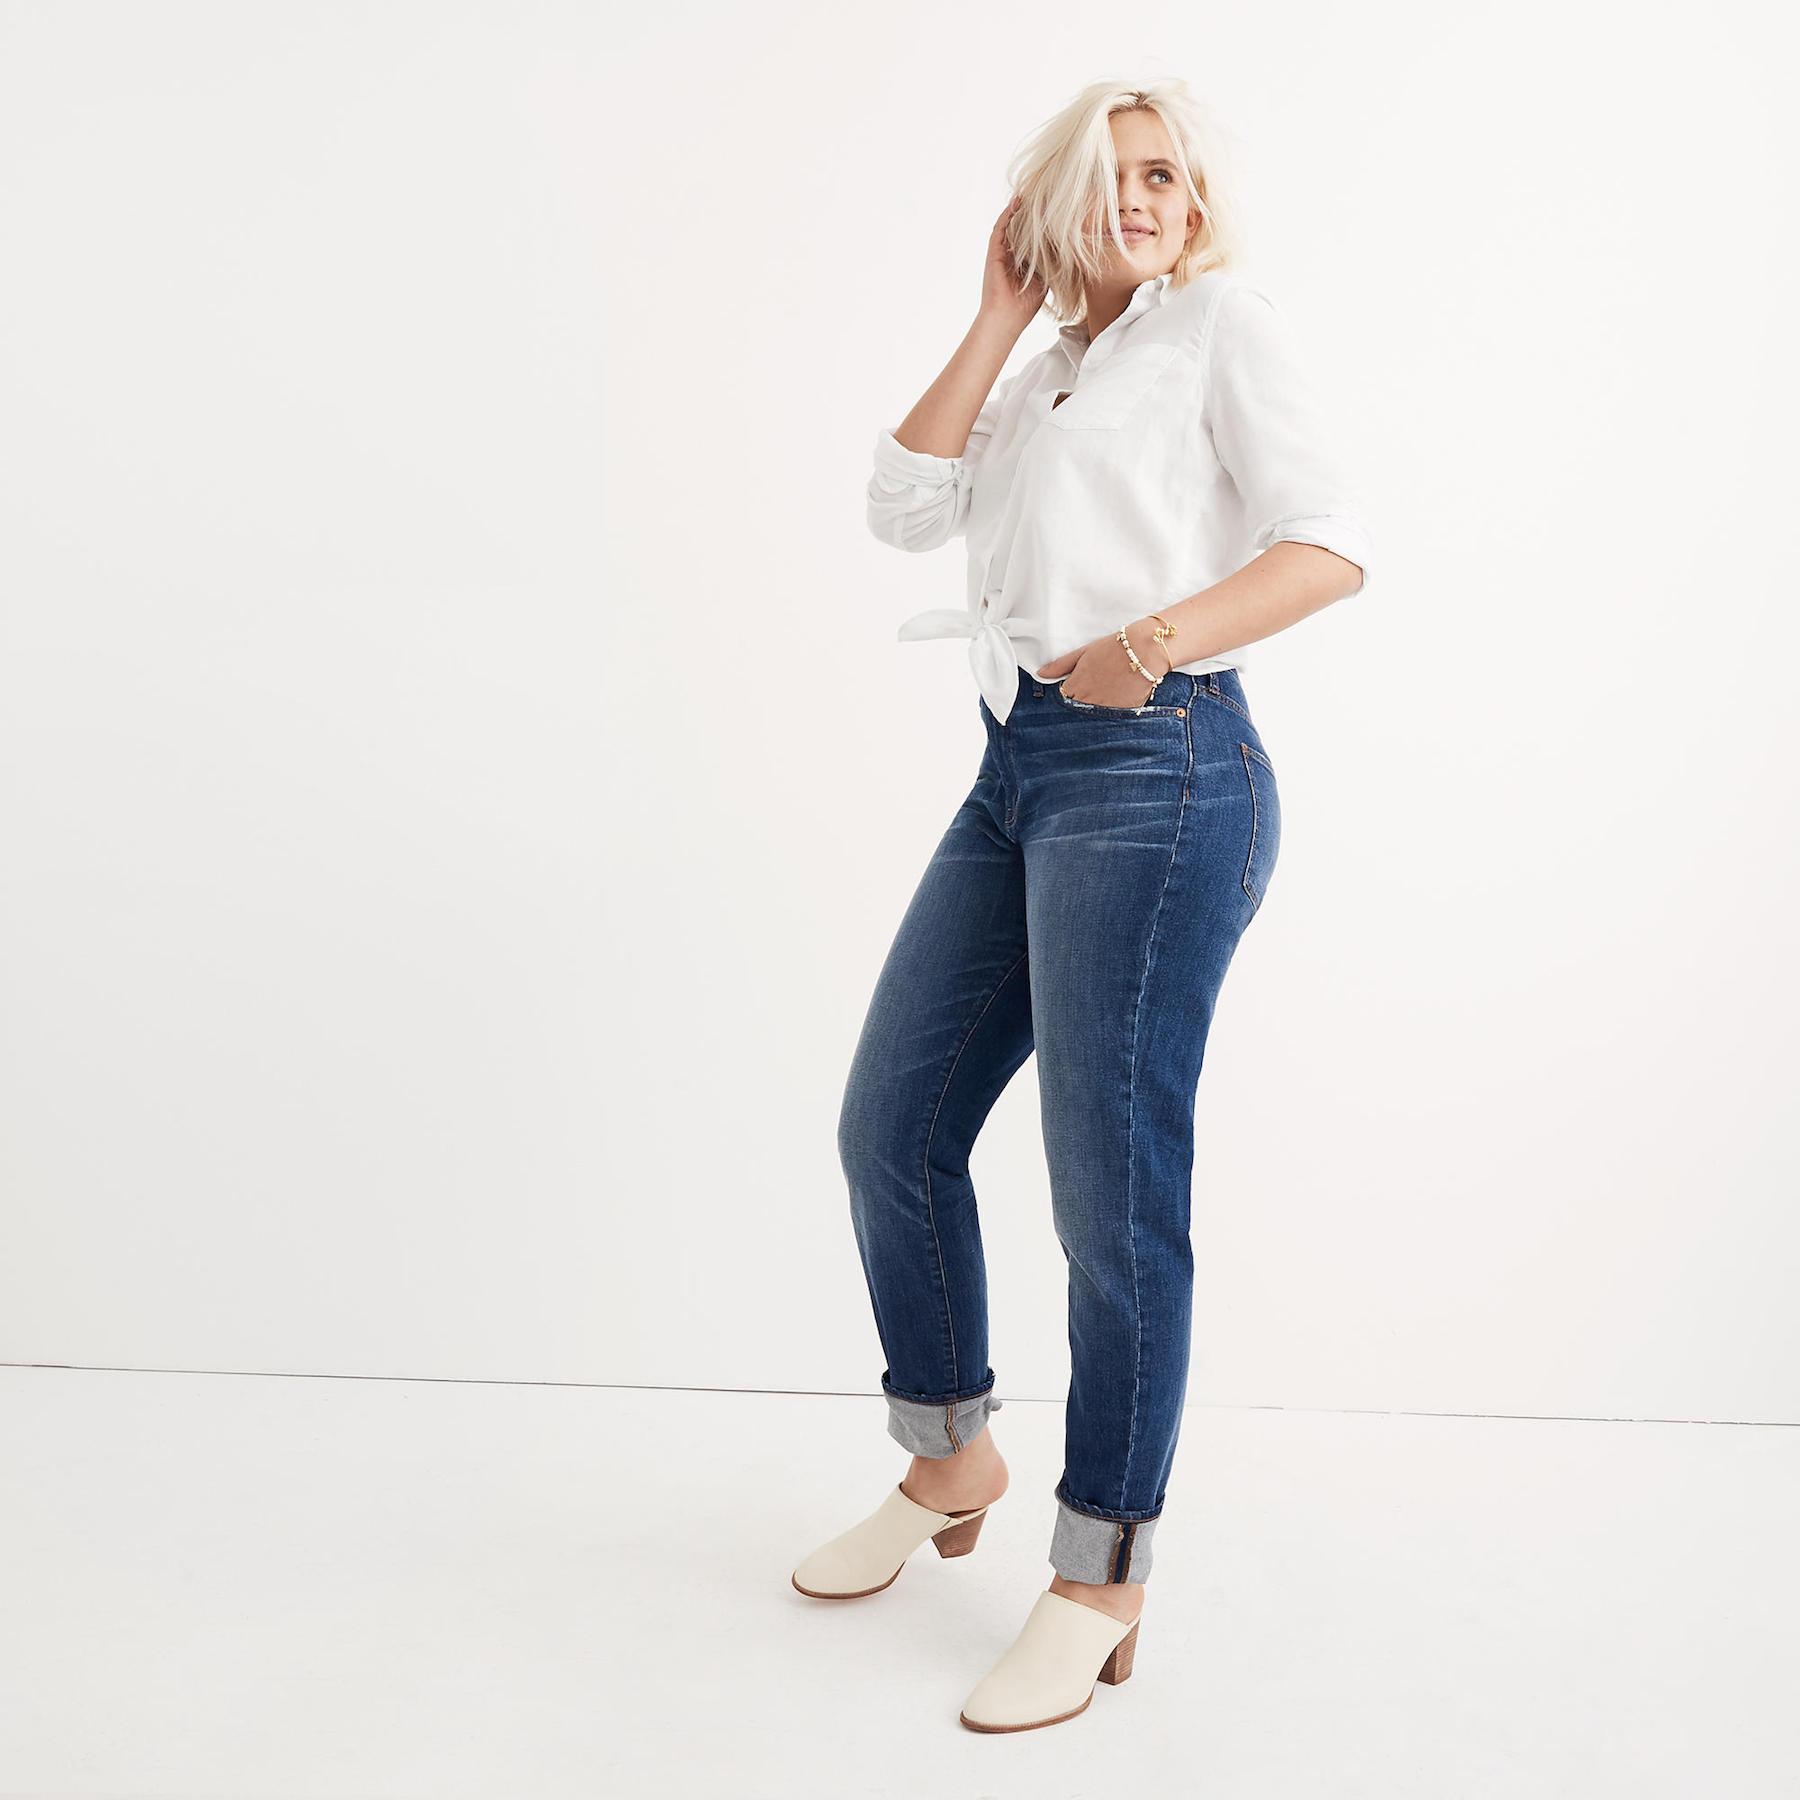 e37877b11bf Madewell and J.Crew Extended Their Denim Sizes